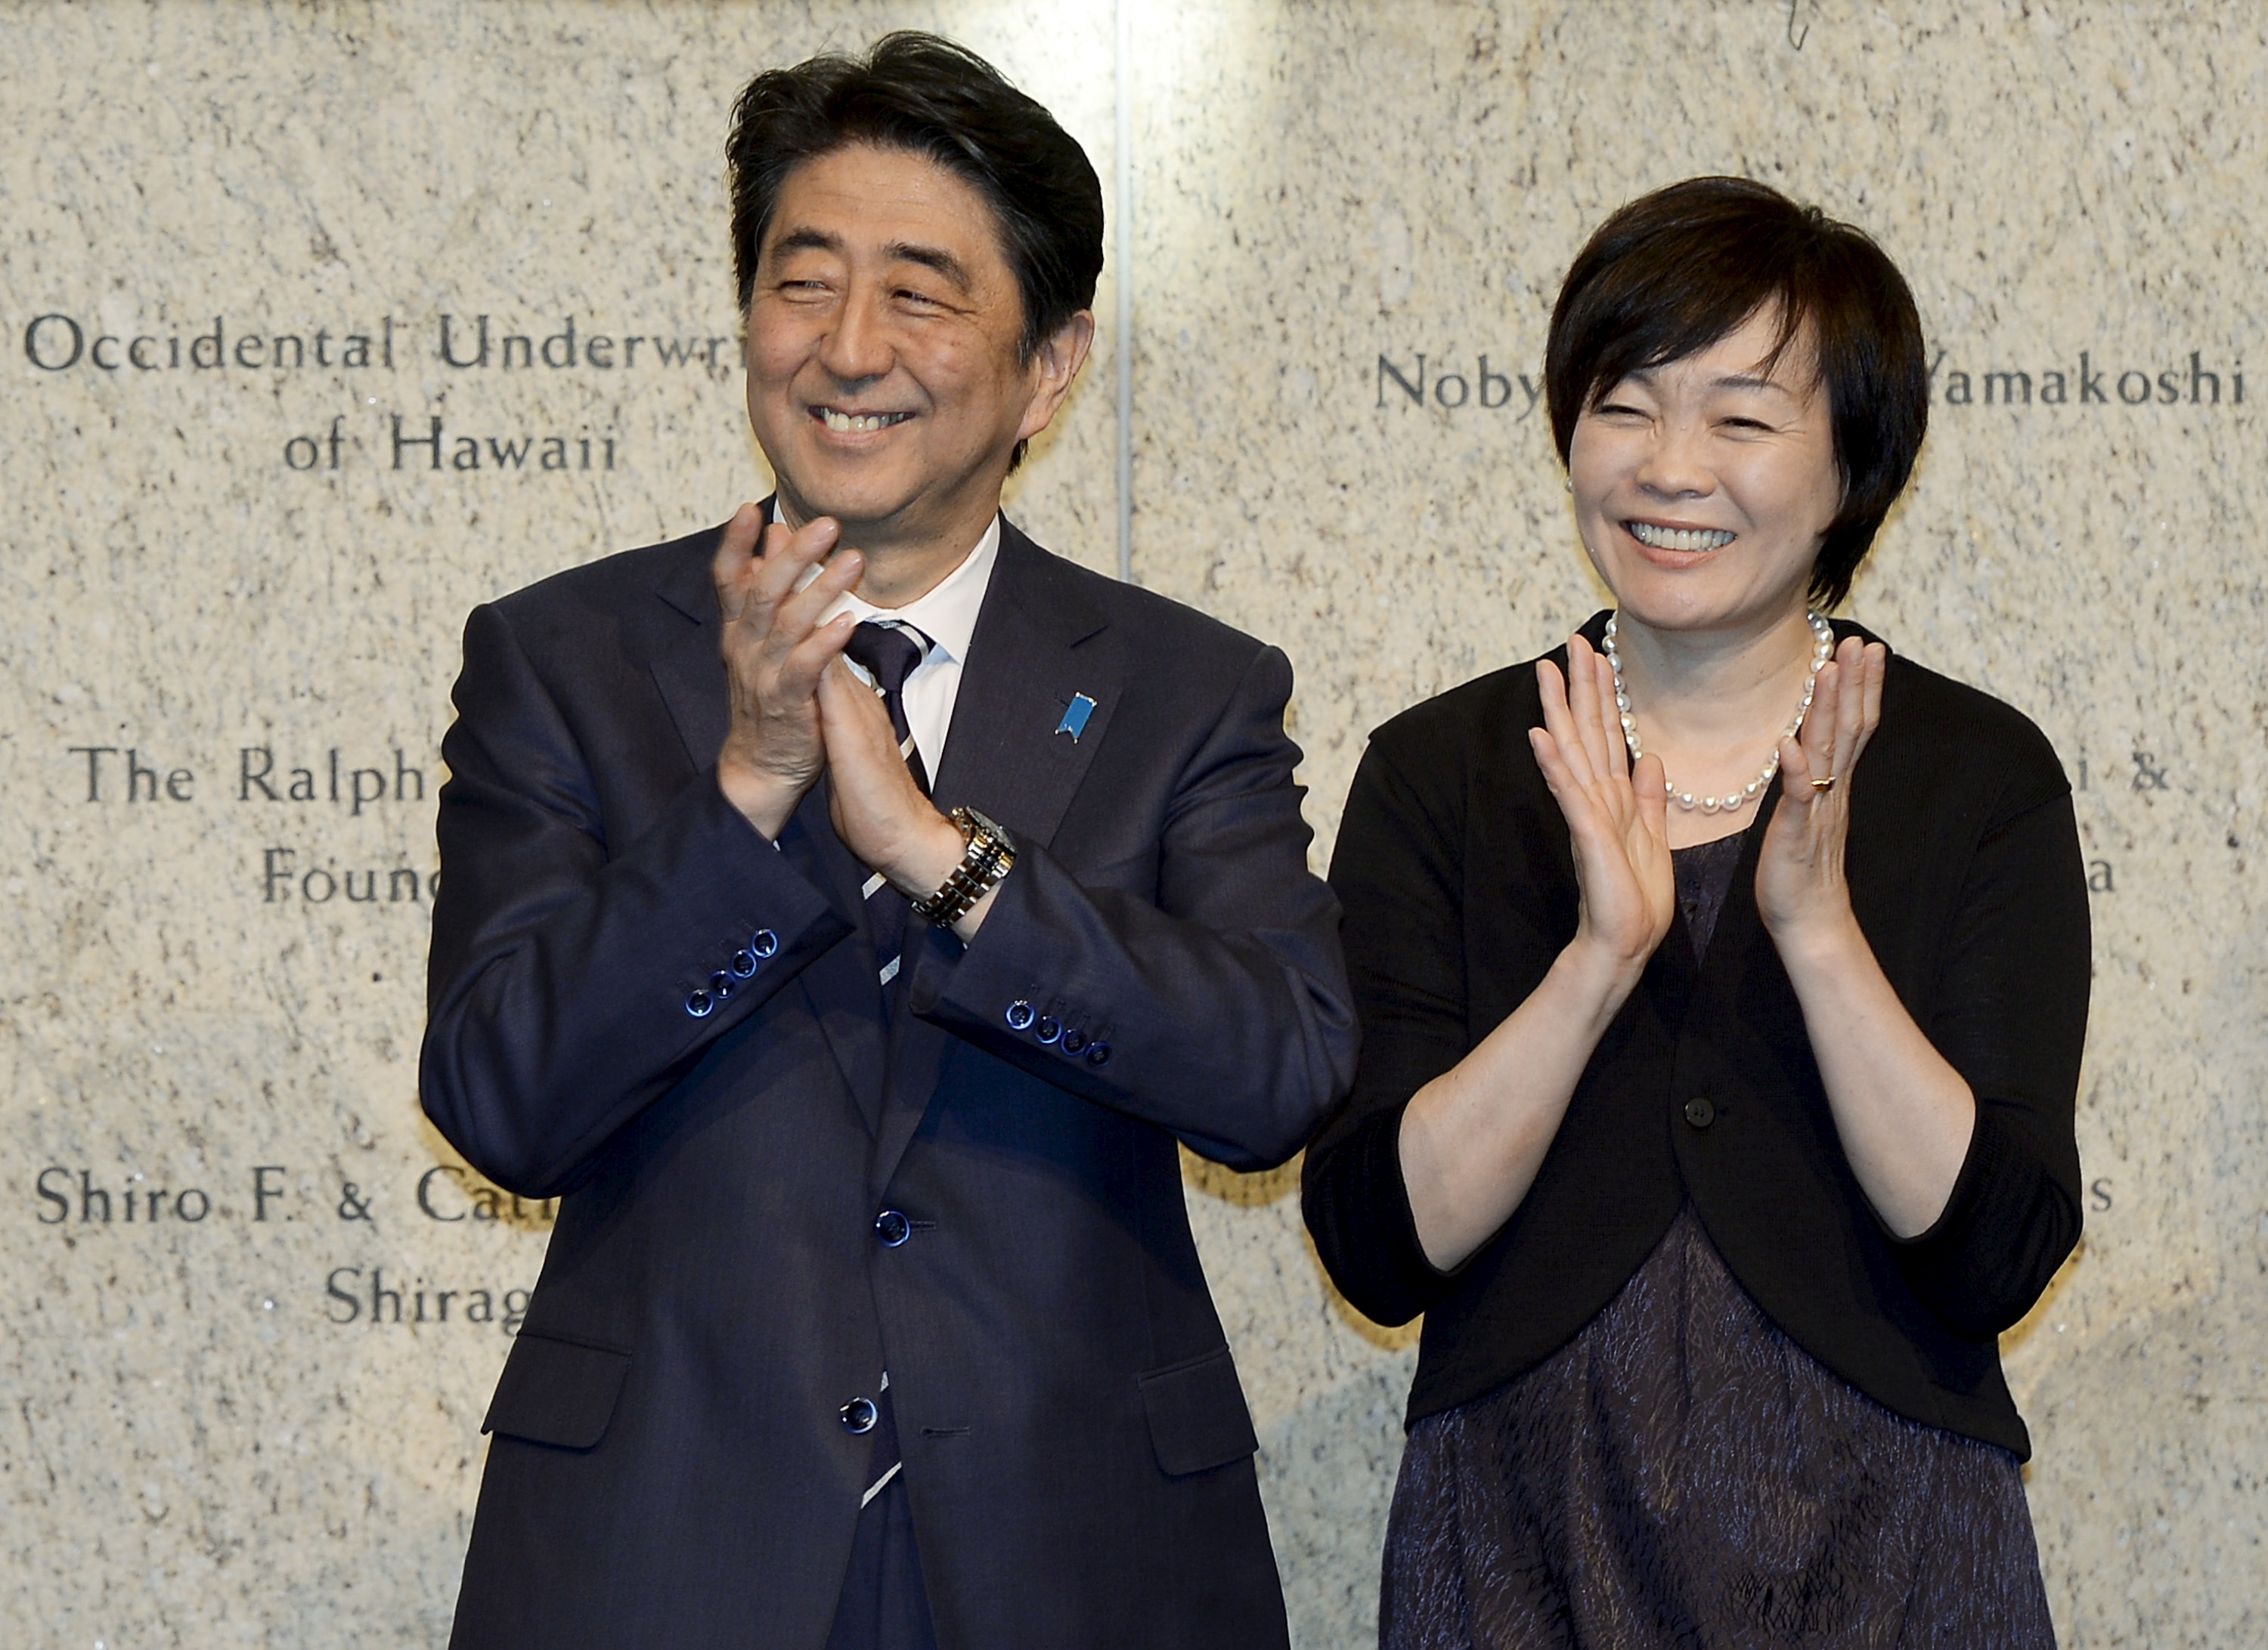 Japan's Prime Minister Shinzo Abe (L) and his wife Akie Abe applaud during a reception at the Japanese American National Museum in Los Angeles